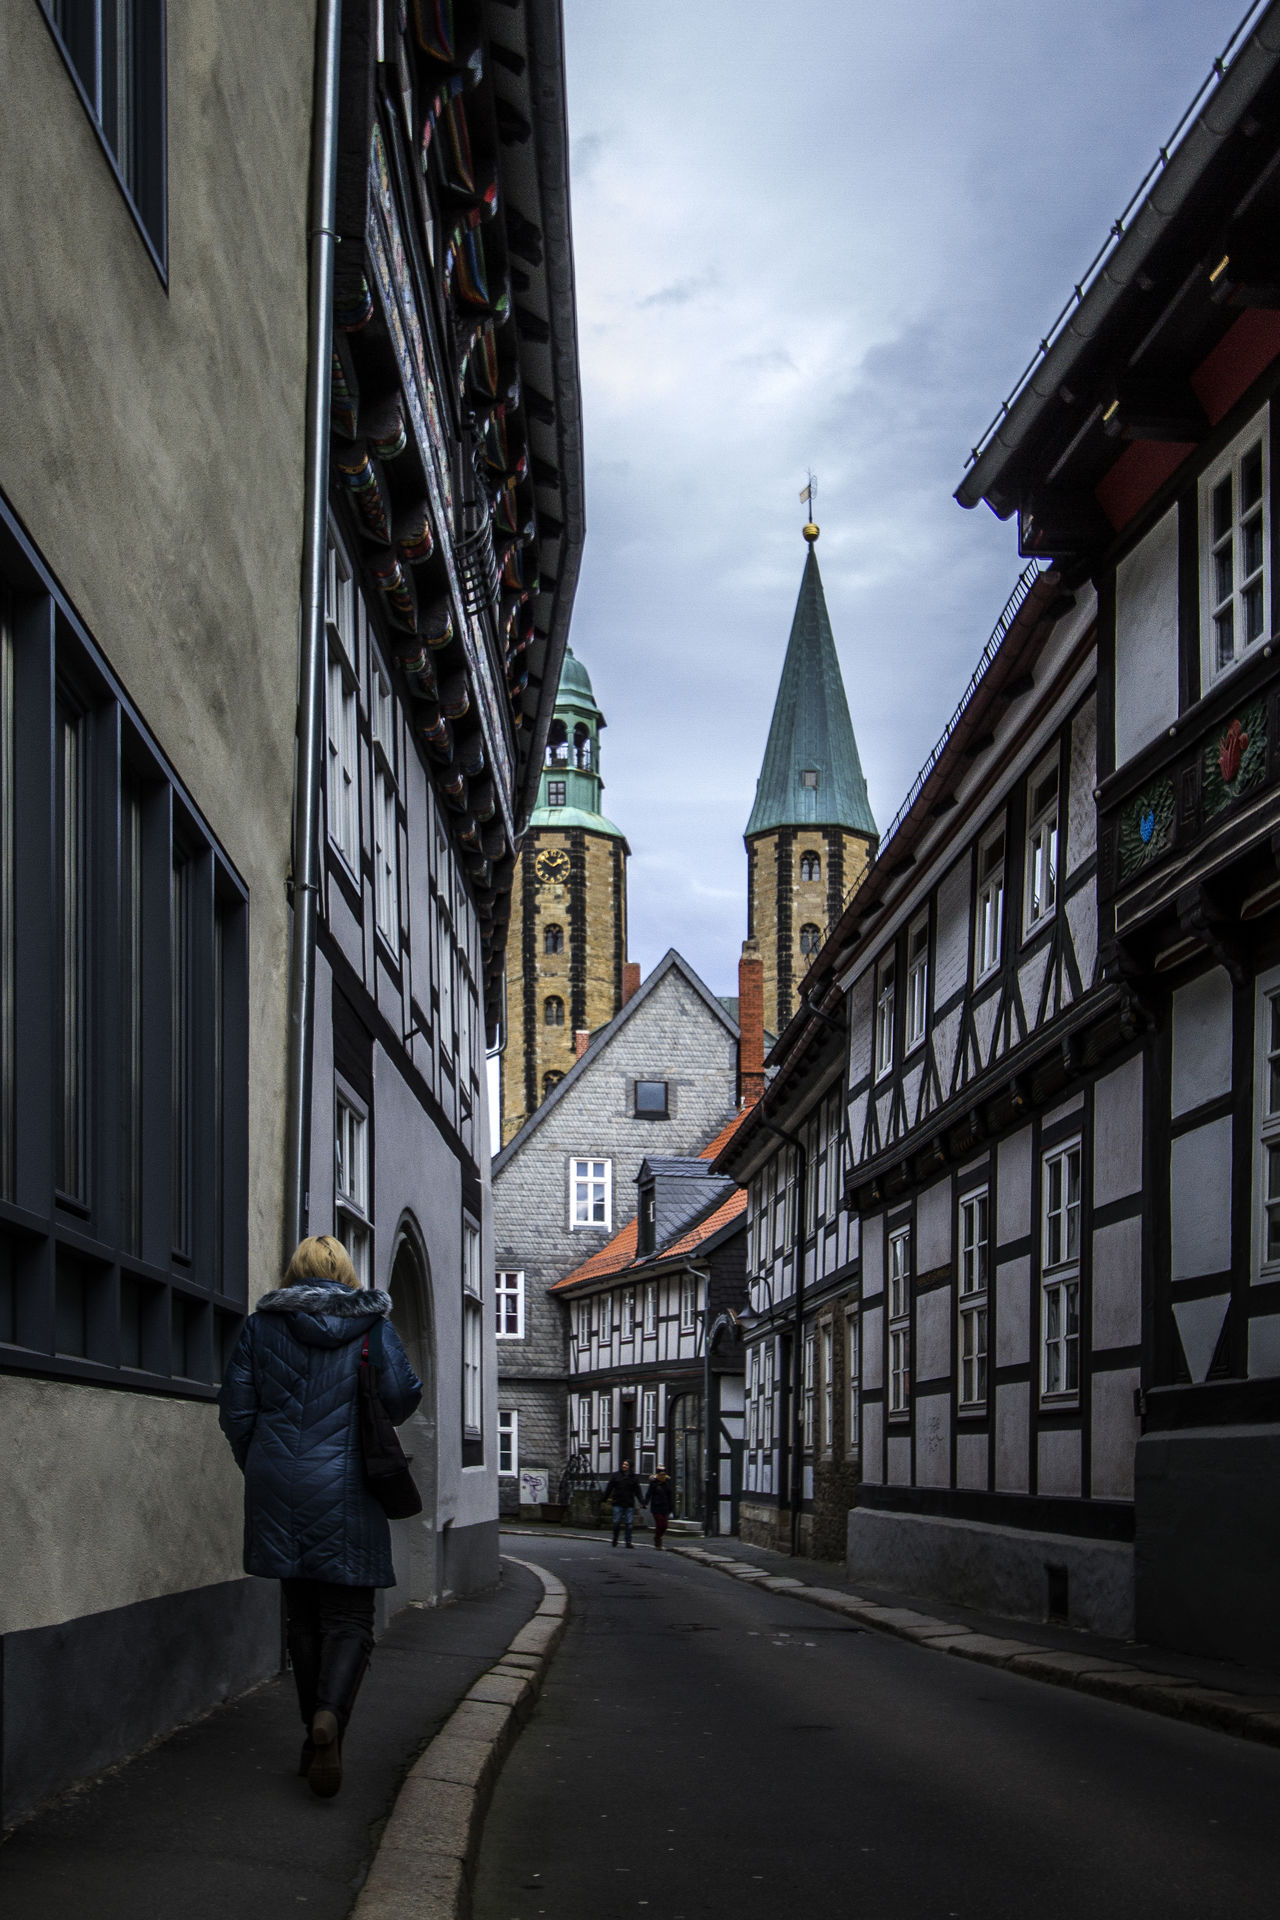 Goslar, Germany Architecture Building Exterior Built Structure Casual Clothing Church City City Life Cloud Day Full Length Germany Goslar Goslar Germany Battle Of The Cities In Front Of Lifestyles Old Town Outdoors Person Place Of Worship Religion Sky Street The Way Forward Tourism